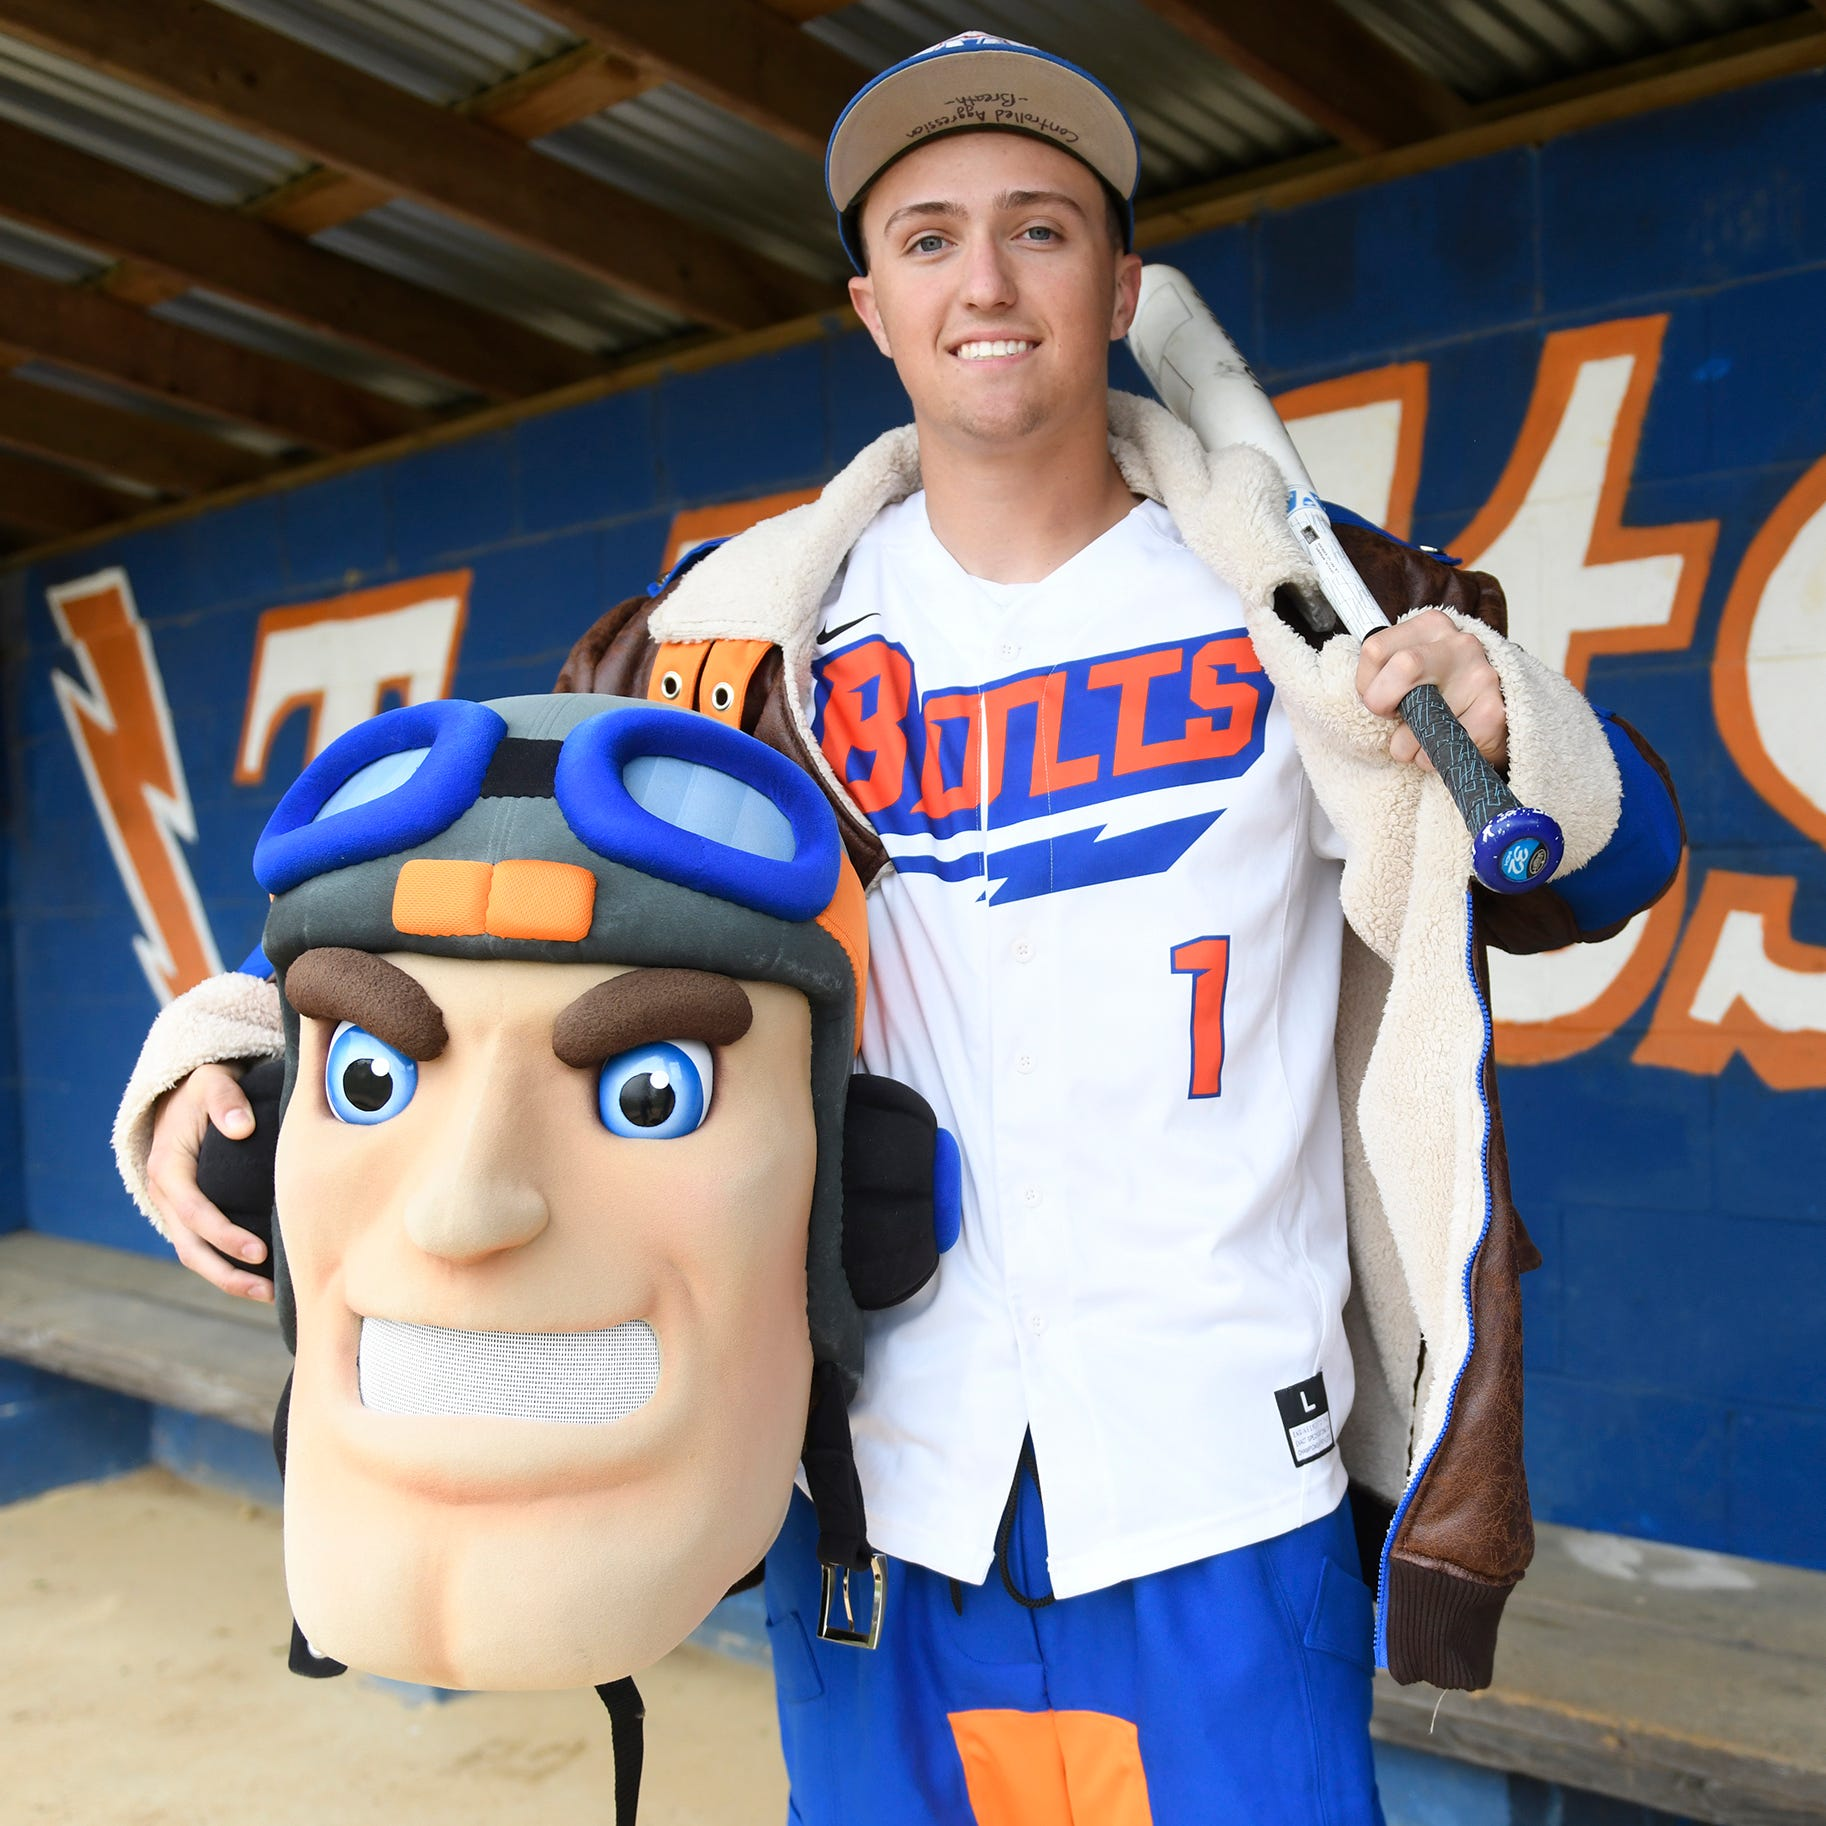 Dom Buonadonna impacts Millville on the baseball field, as the mascot and more